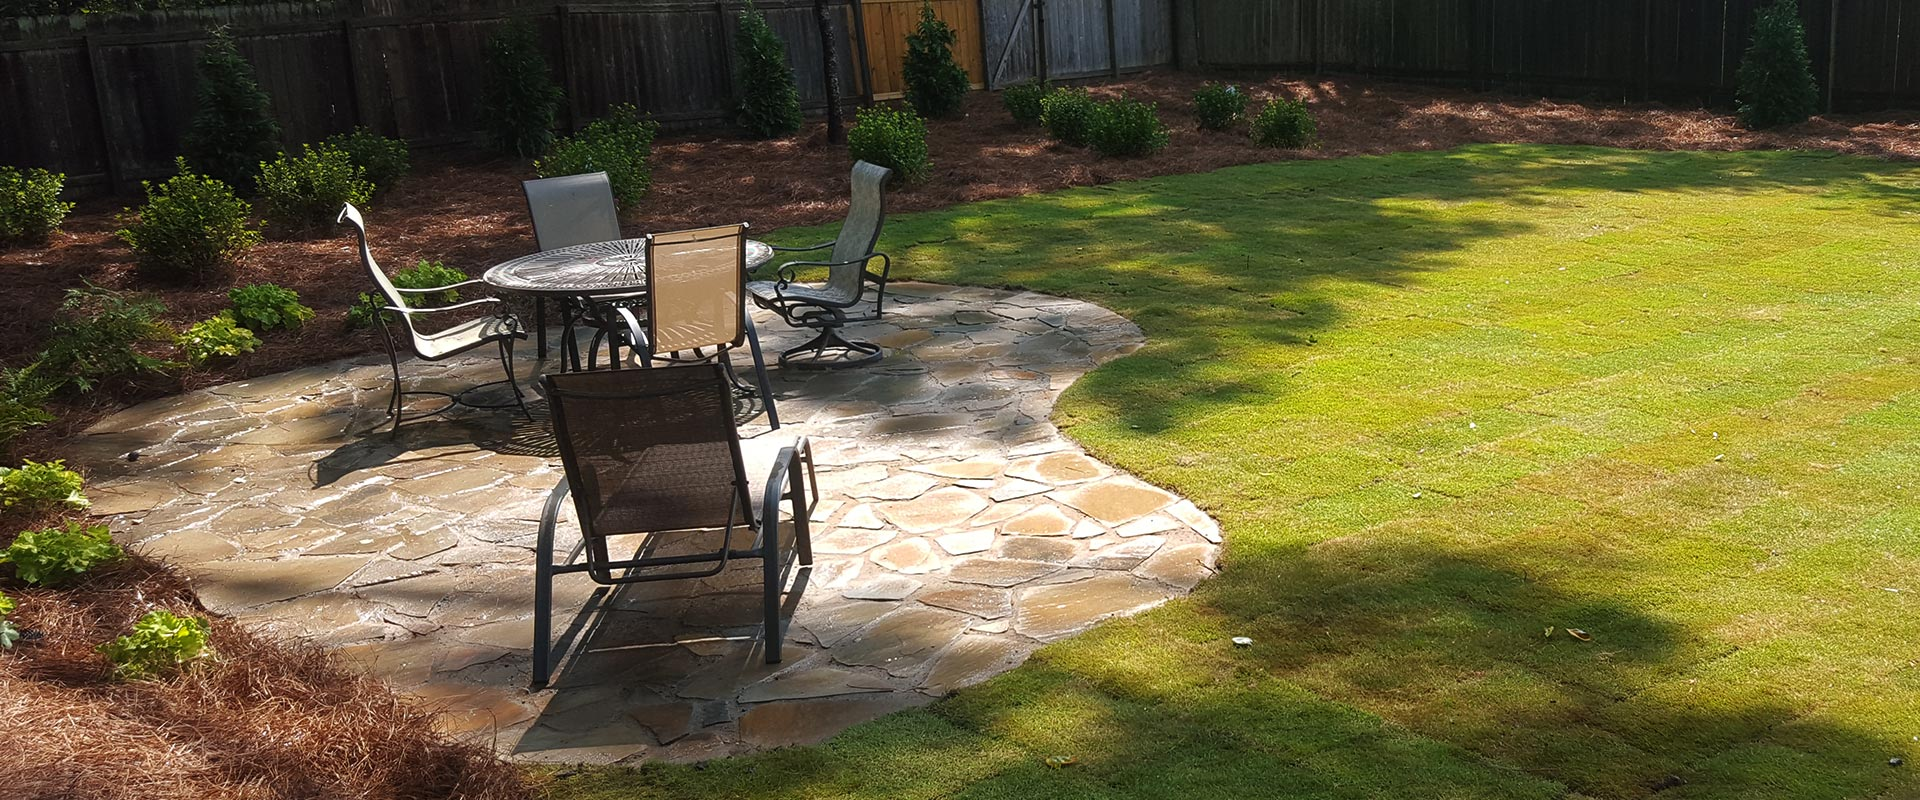 backyard flagstone patio with garden furniture